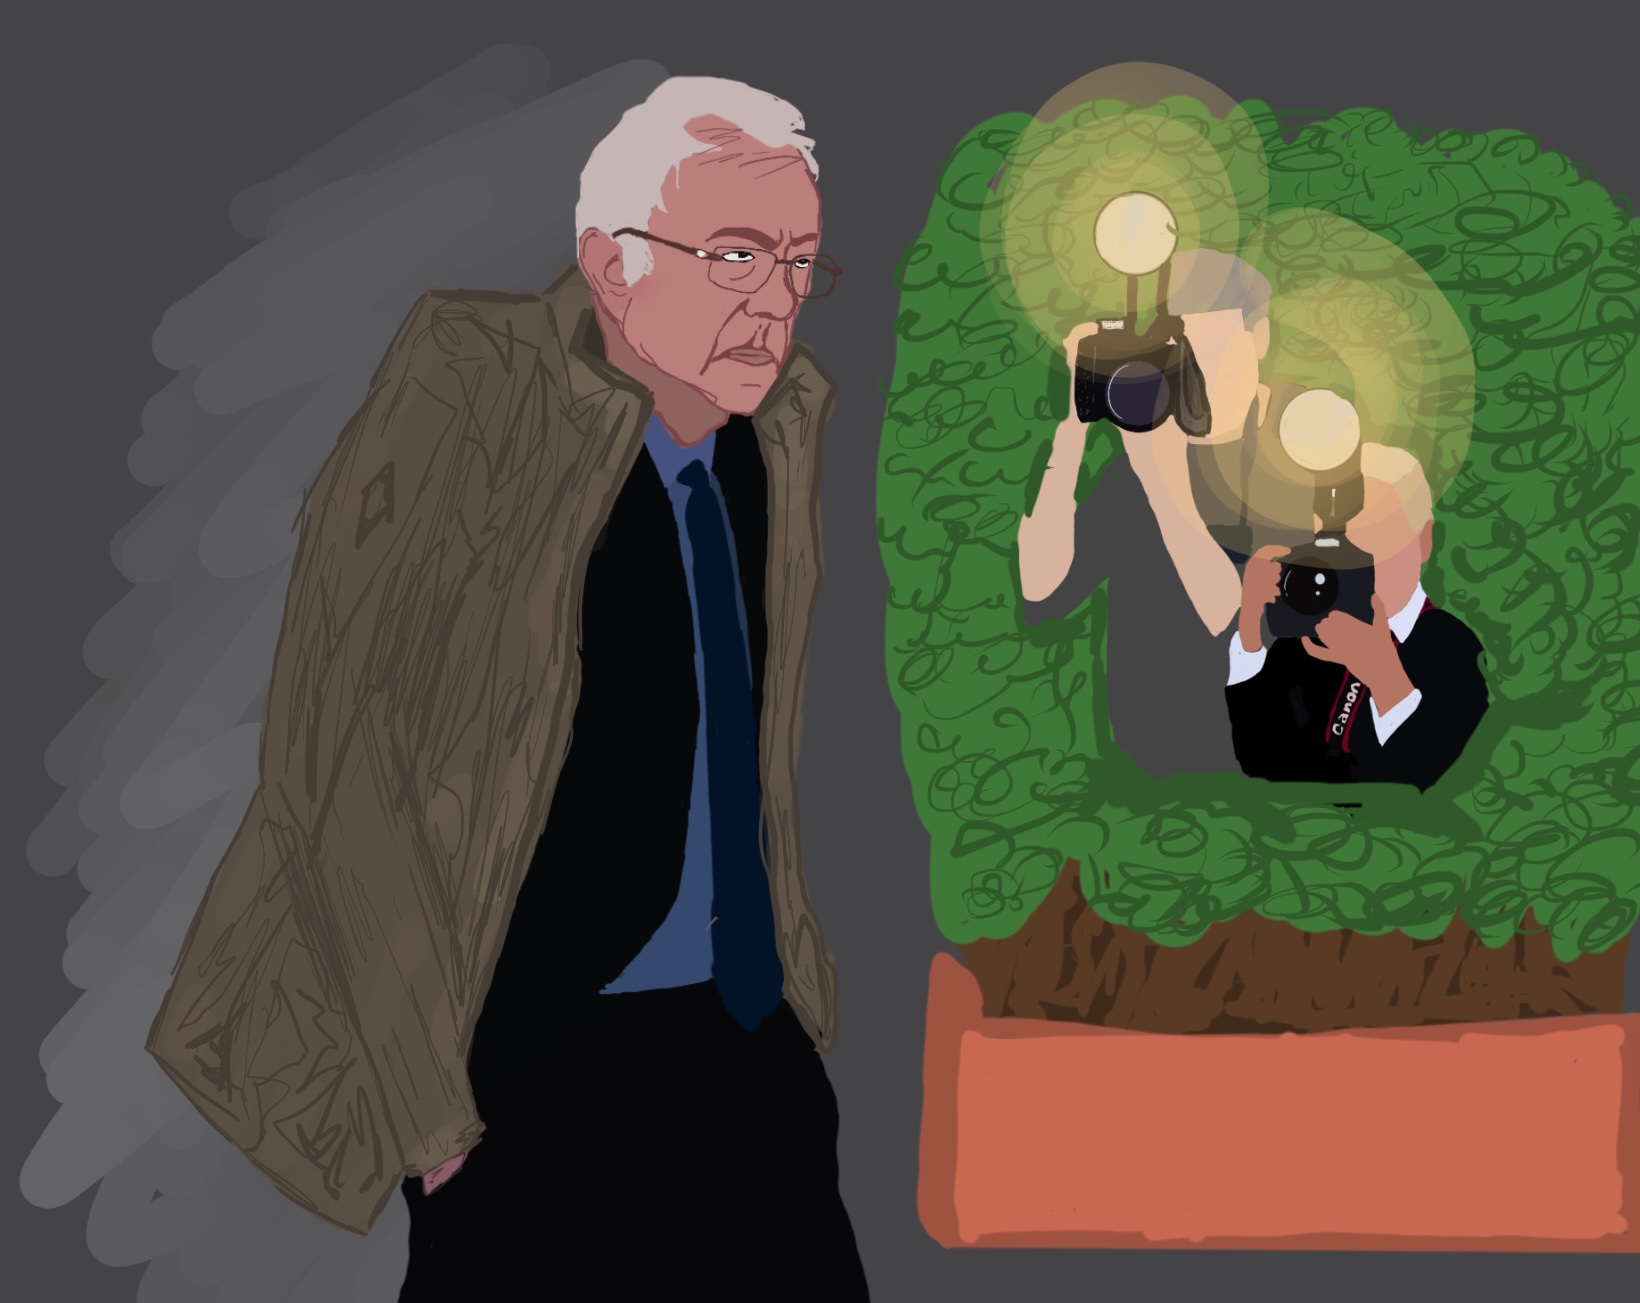 Bernie Sanders walks past a bush as paparazzi peer out with flashing cameras, hoping to snap a photo